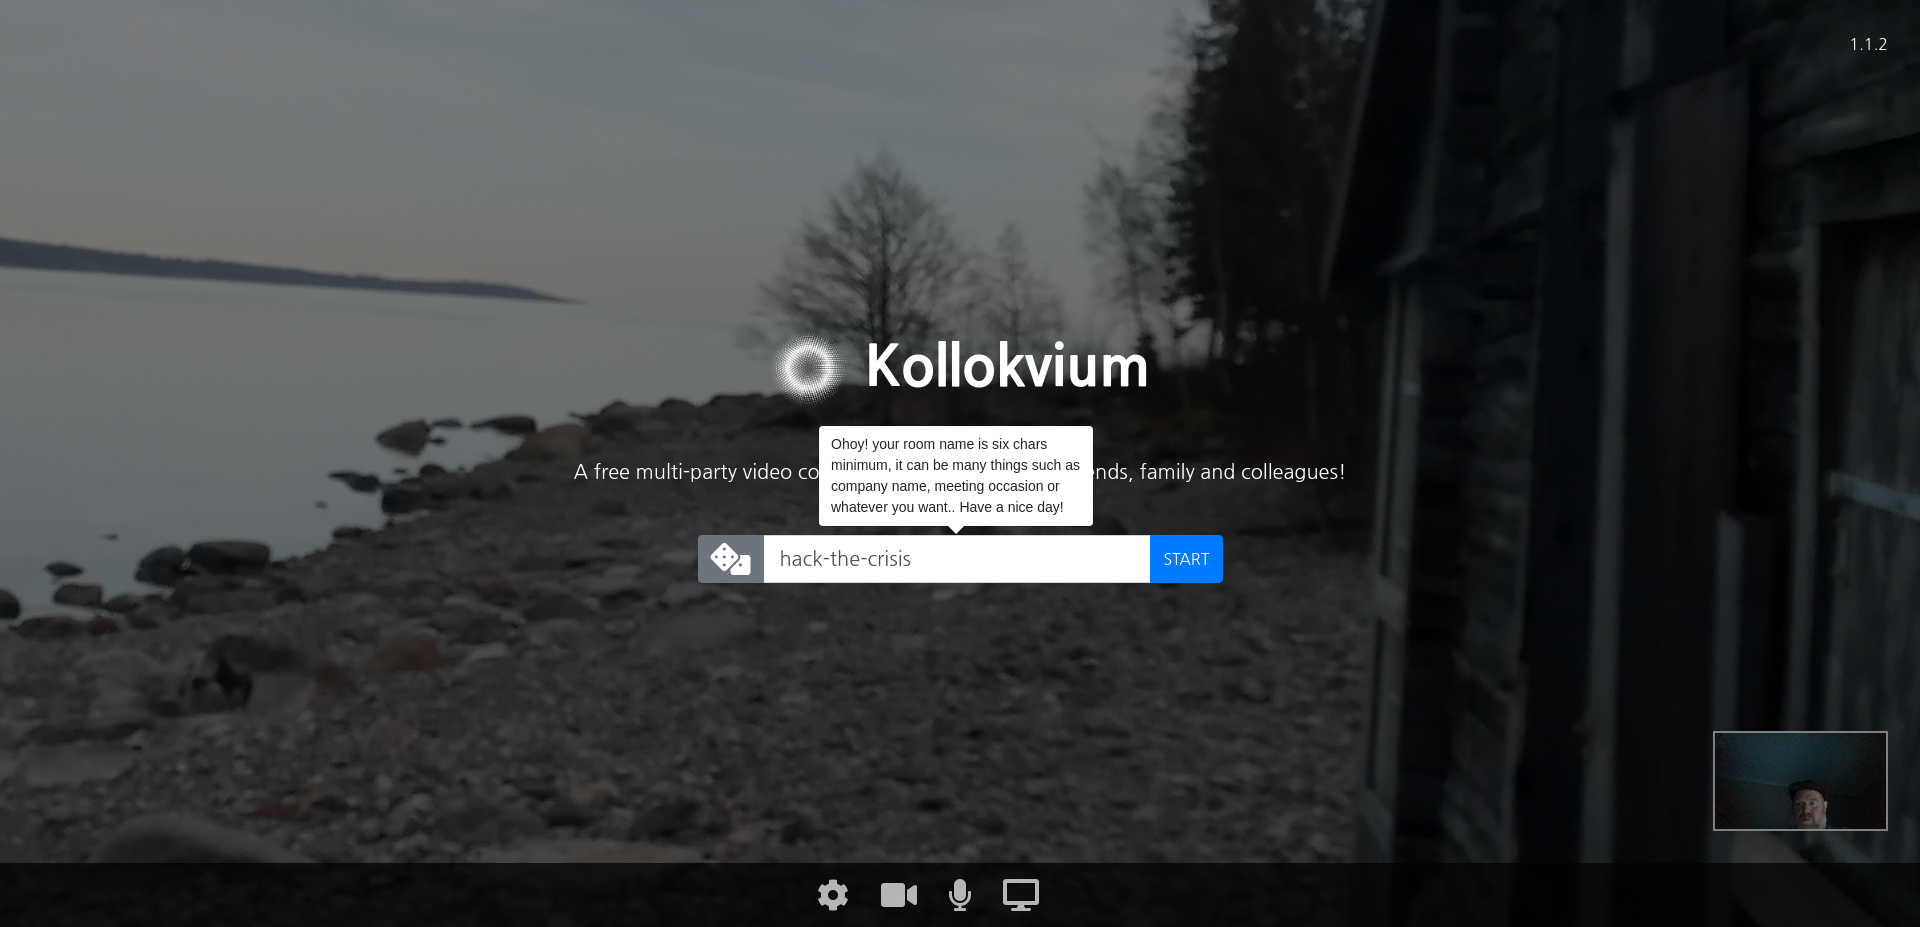 Kollokvium-Meetings made easy,secure & private for everyone!